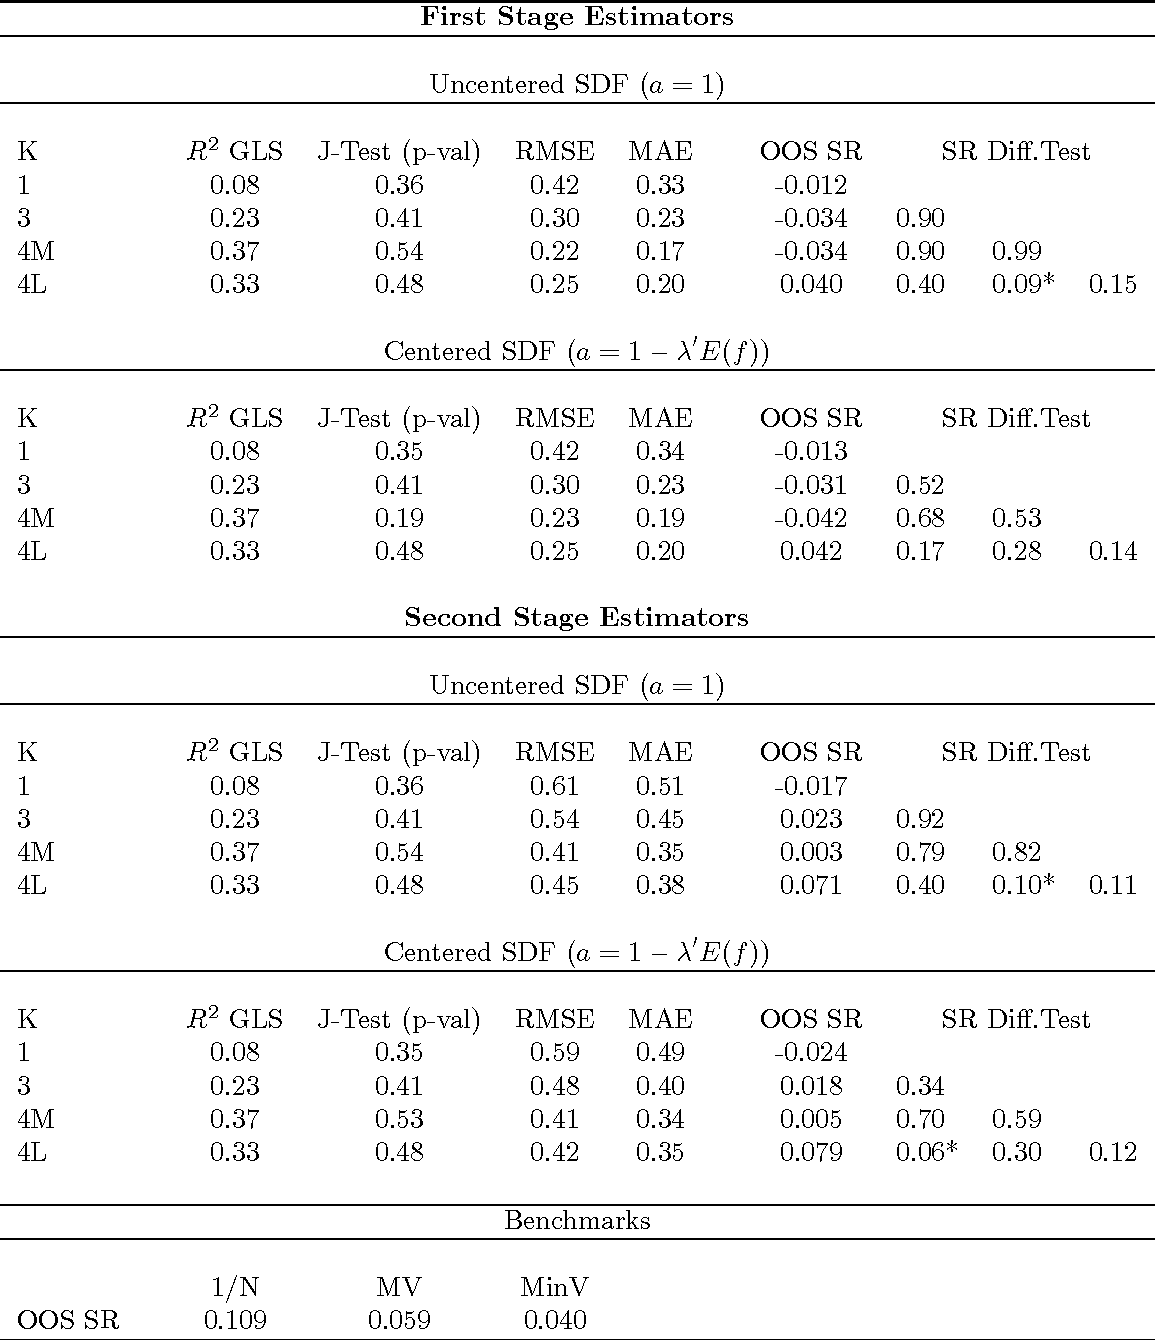 Table 7: Linear Asset Pricing Model Estimation and MV Portfolio Performance